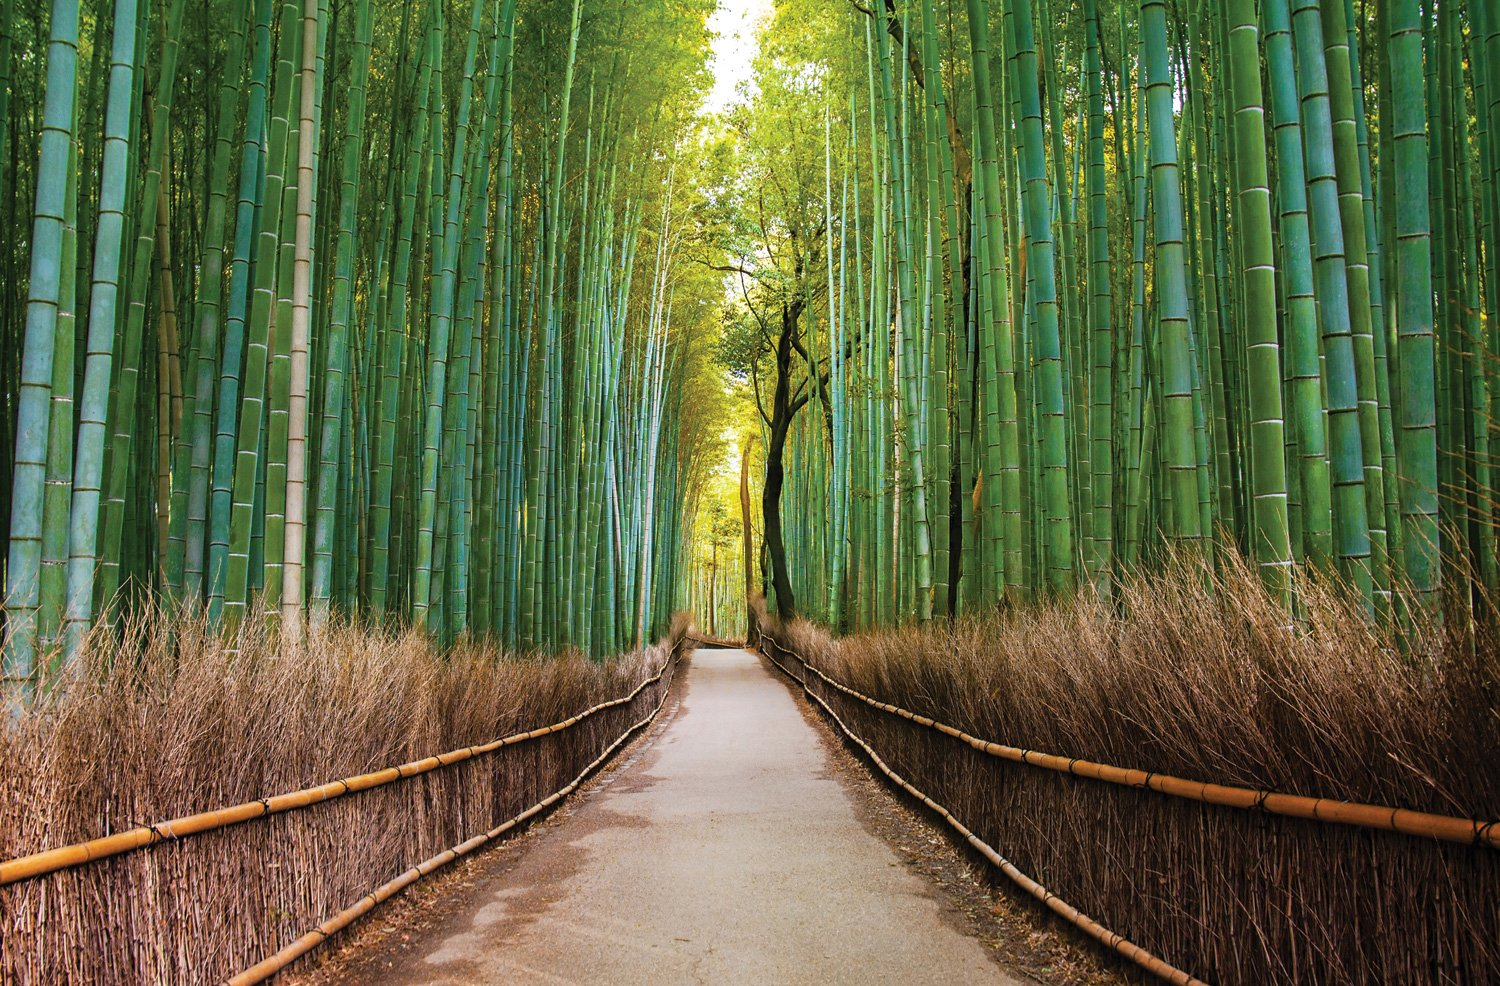 JP London Mural Bamboo Forest Path Zen Trees at 3 Wide by 2 Feet high SPMUR2405 Fully Removable Peel and Stick Wall Art